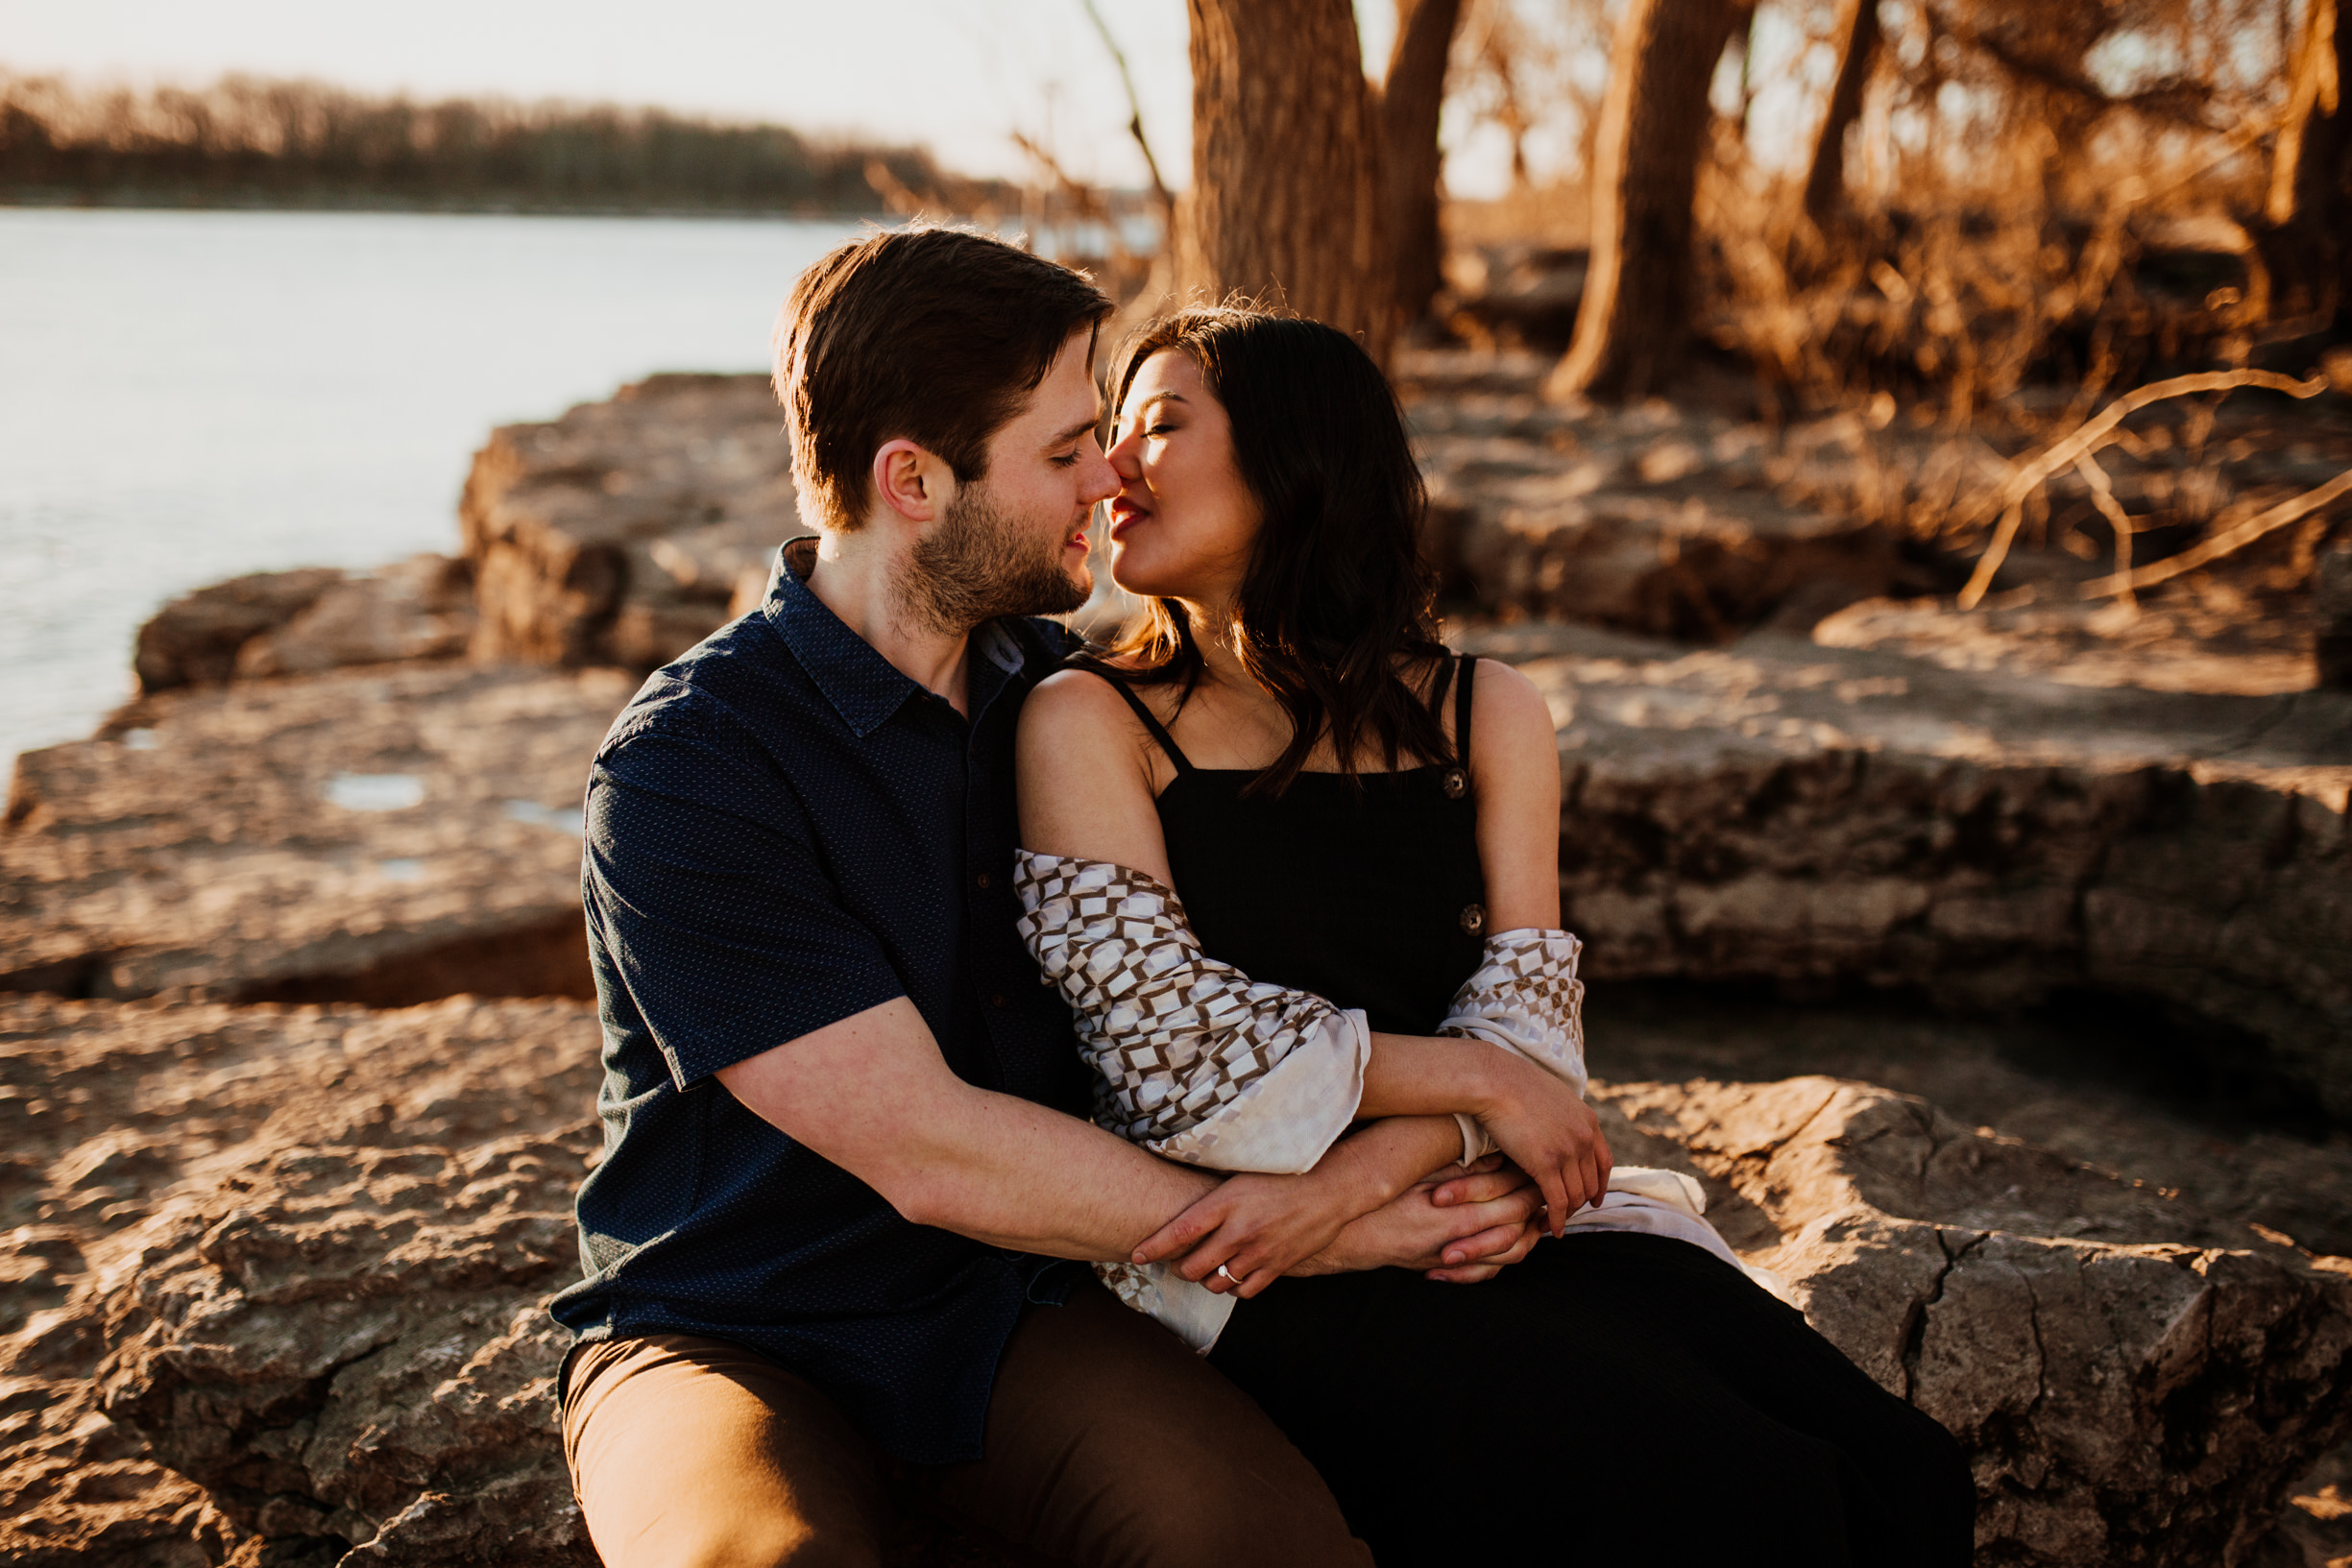 louisville-engagement-photographer-crystal-ludwick-photo-tammy-and-caleb-engagement-photography (19 of 32).jpg